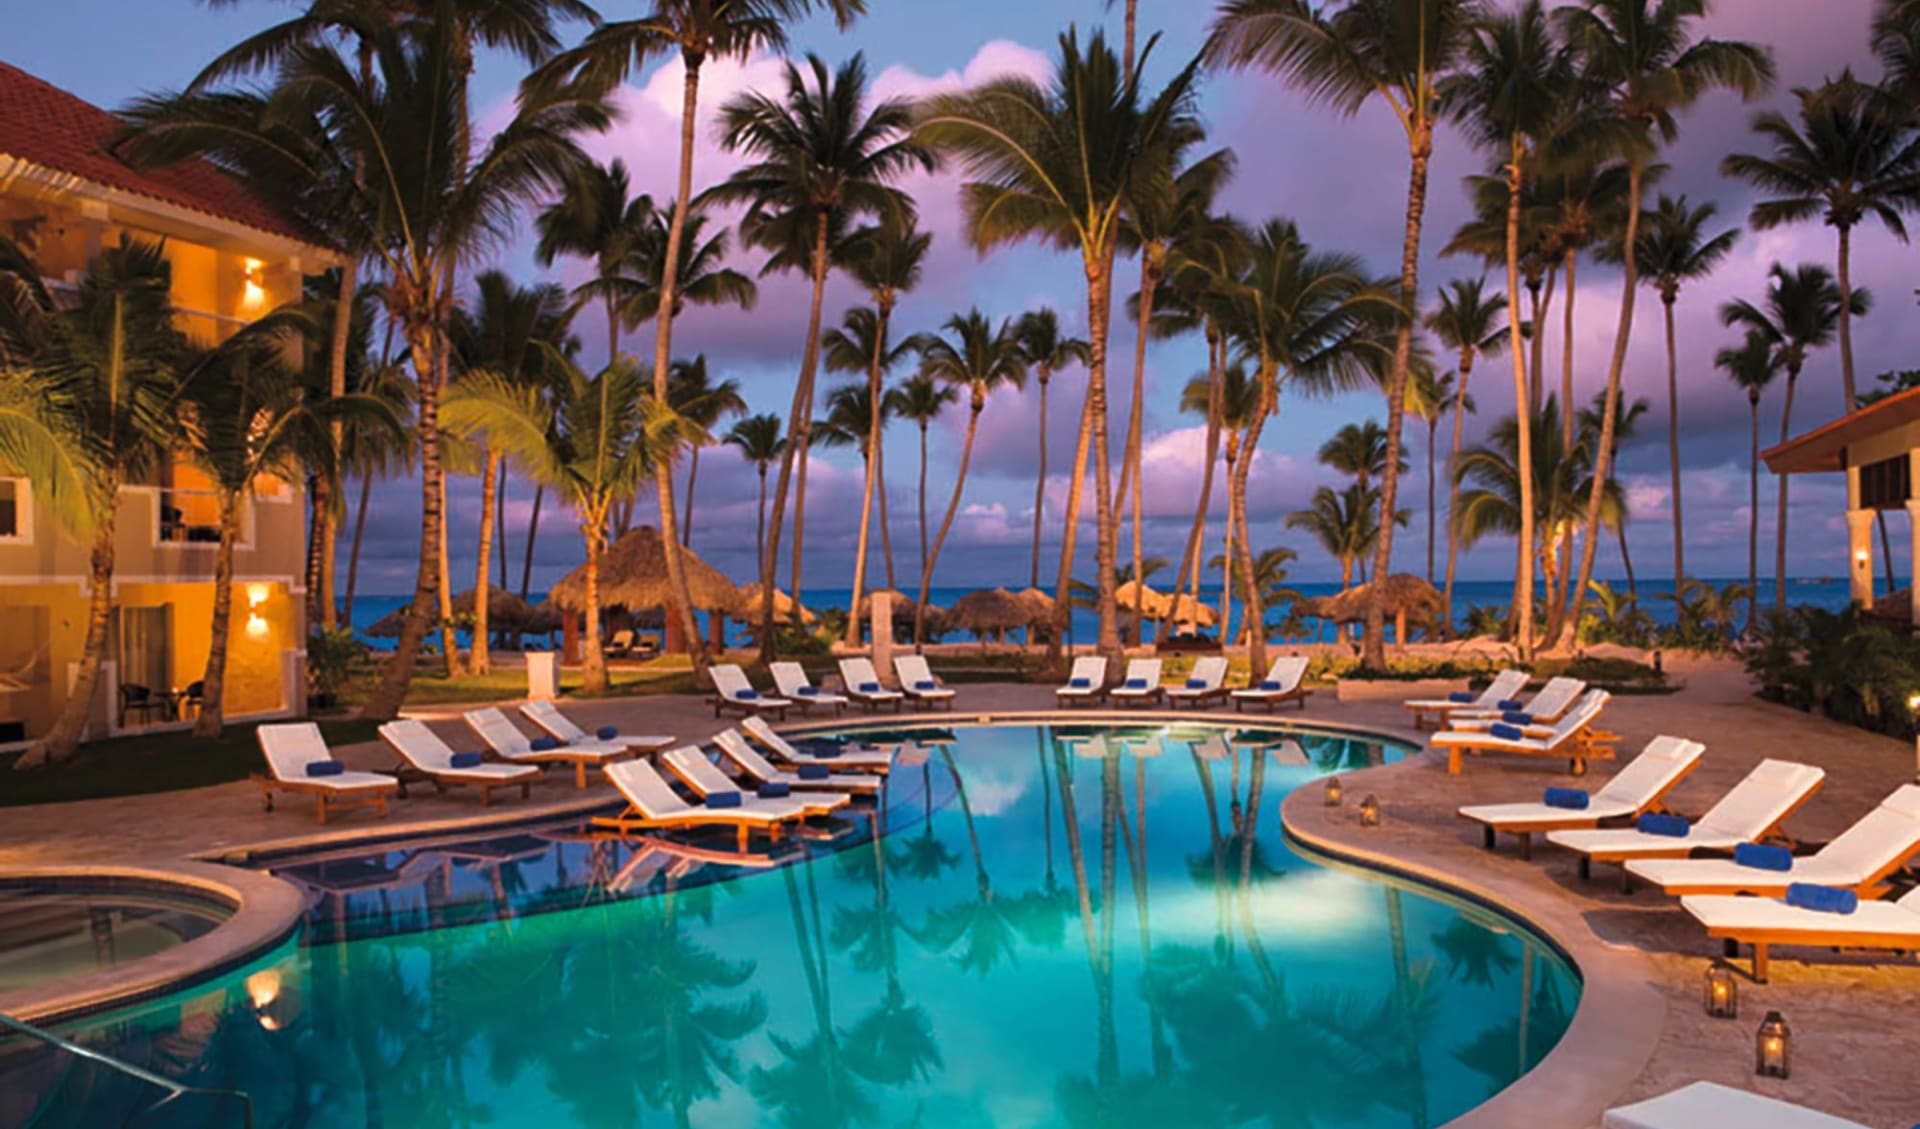 Dreams Palm Beach in Punta Cana:  Dreams Palm Beach - Pool, Swimming pool c Latinconnect